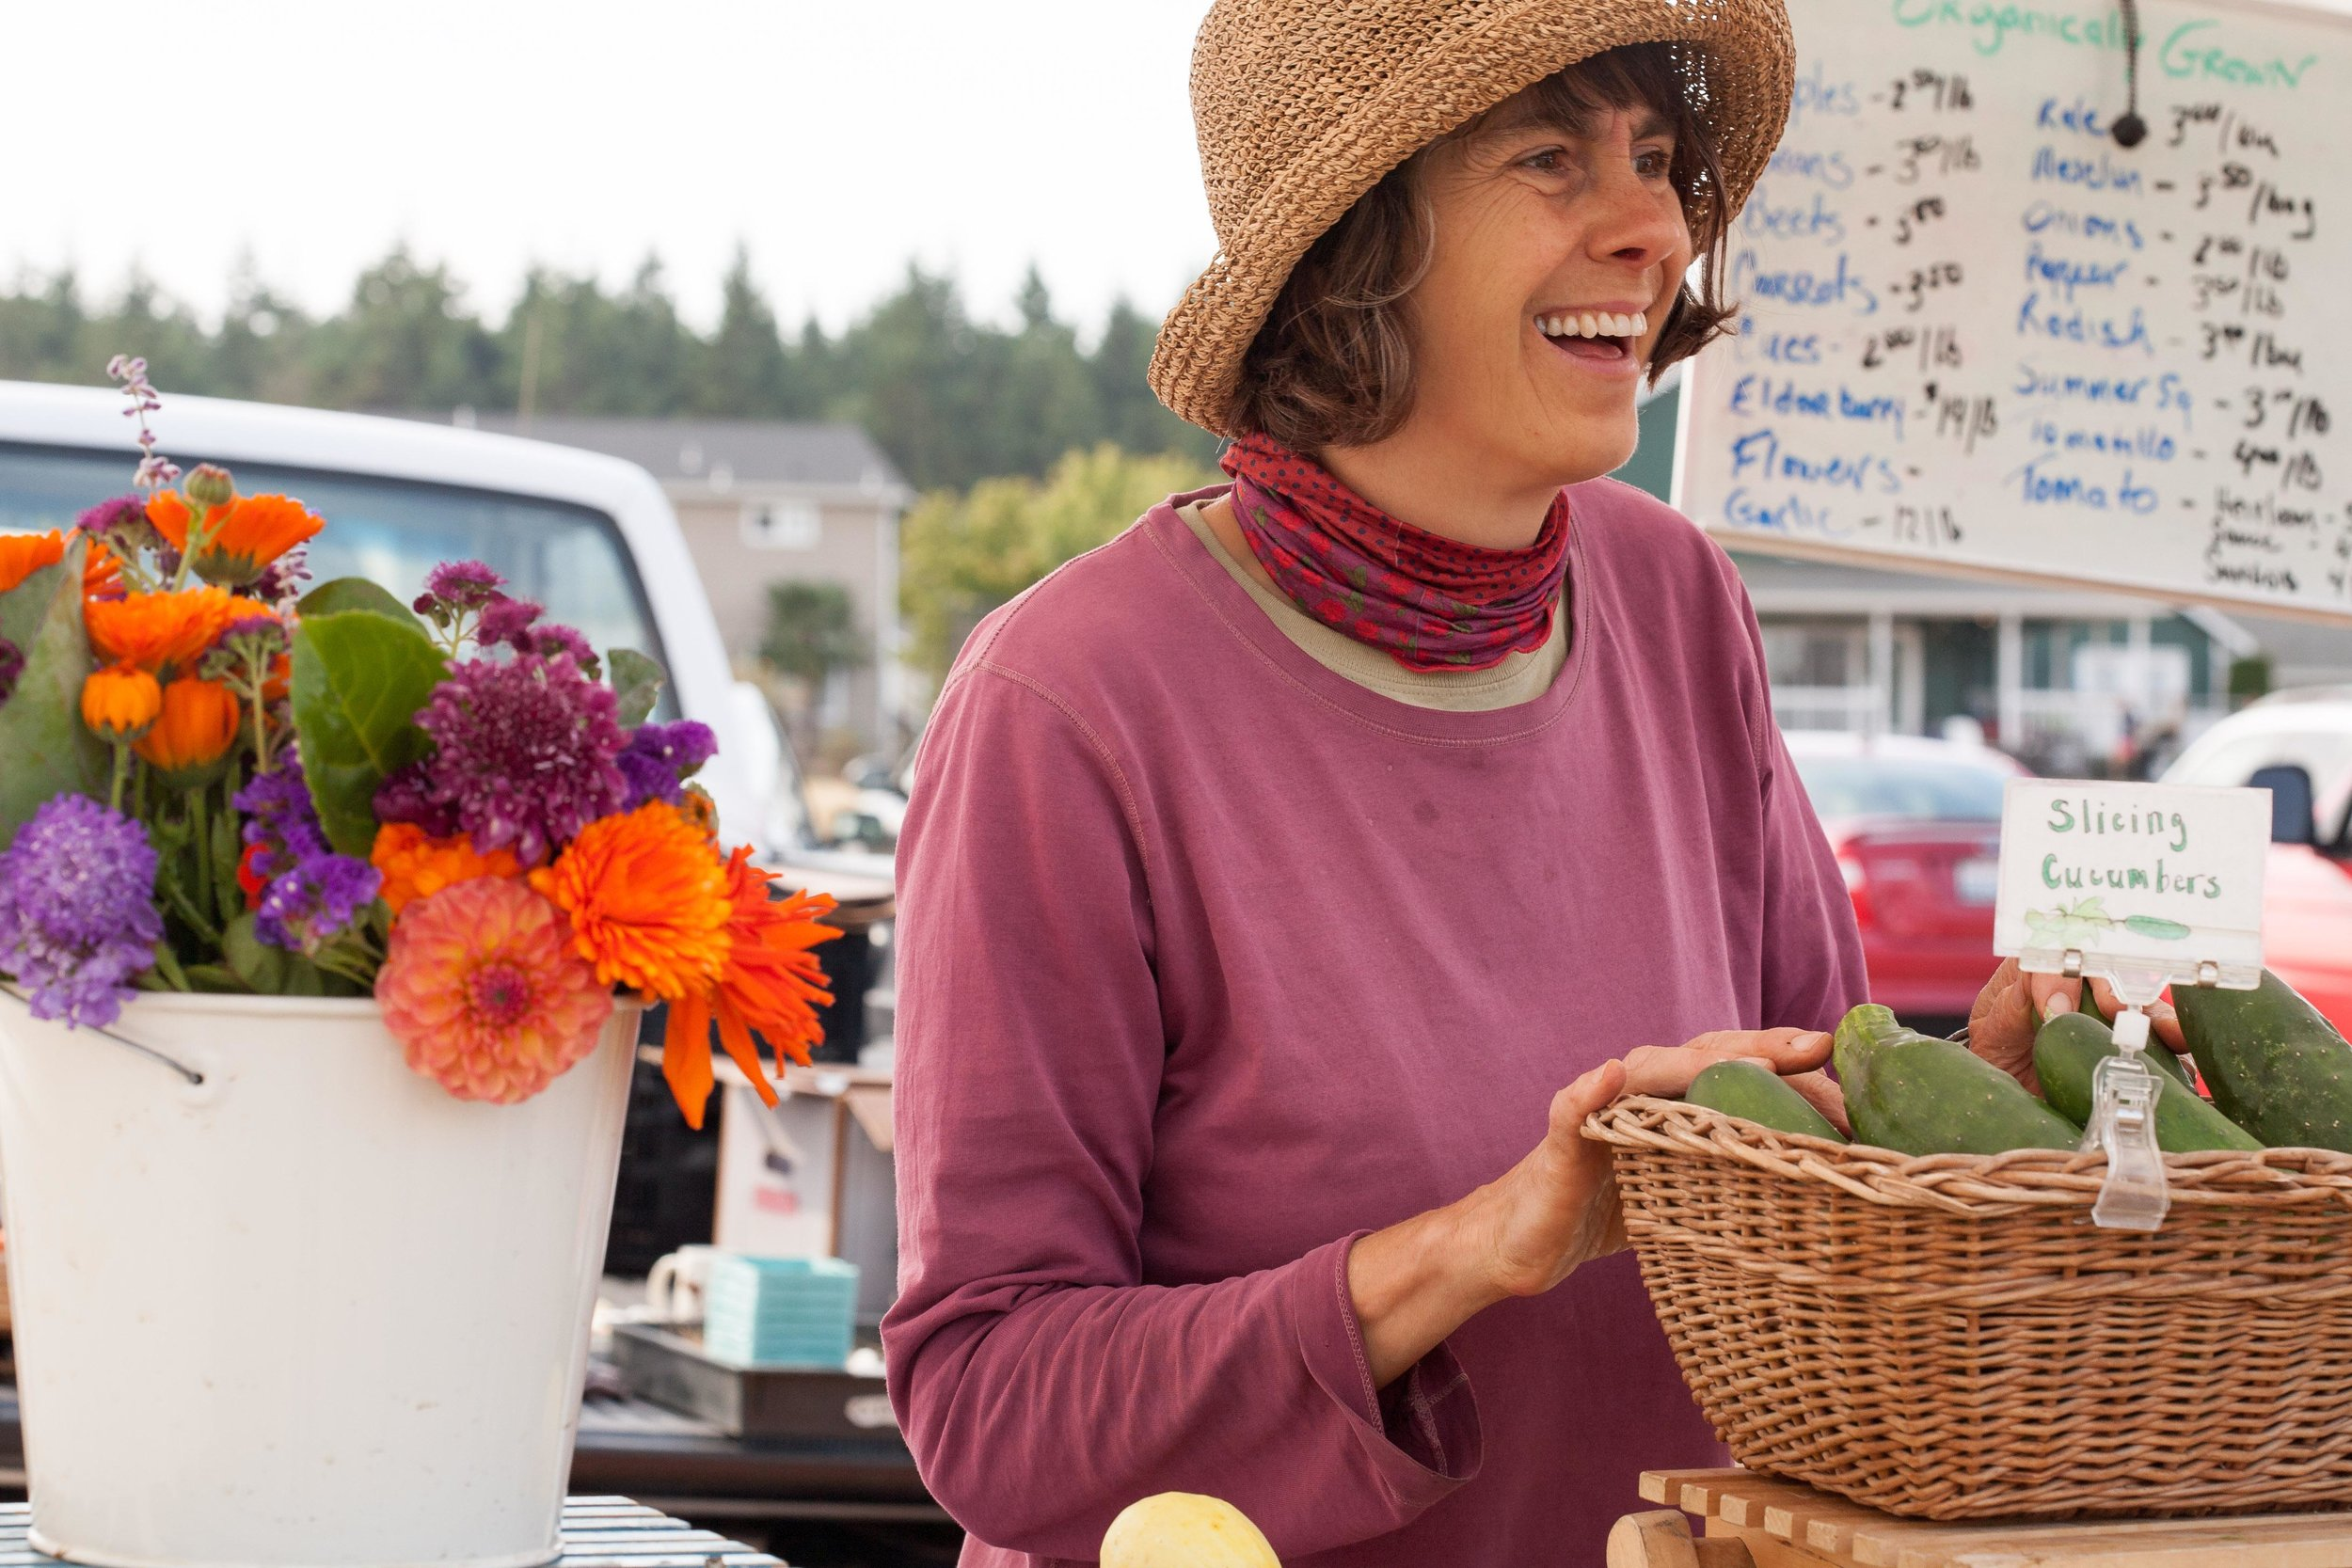 Coupeville_Market_September_2017-4 copy.jpg